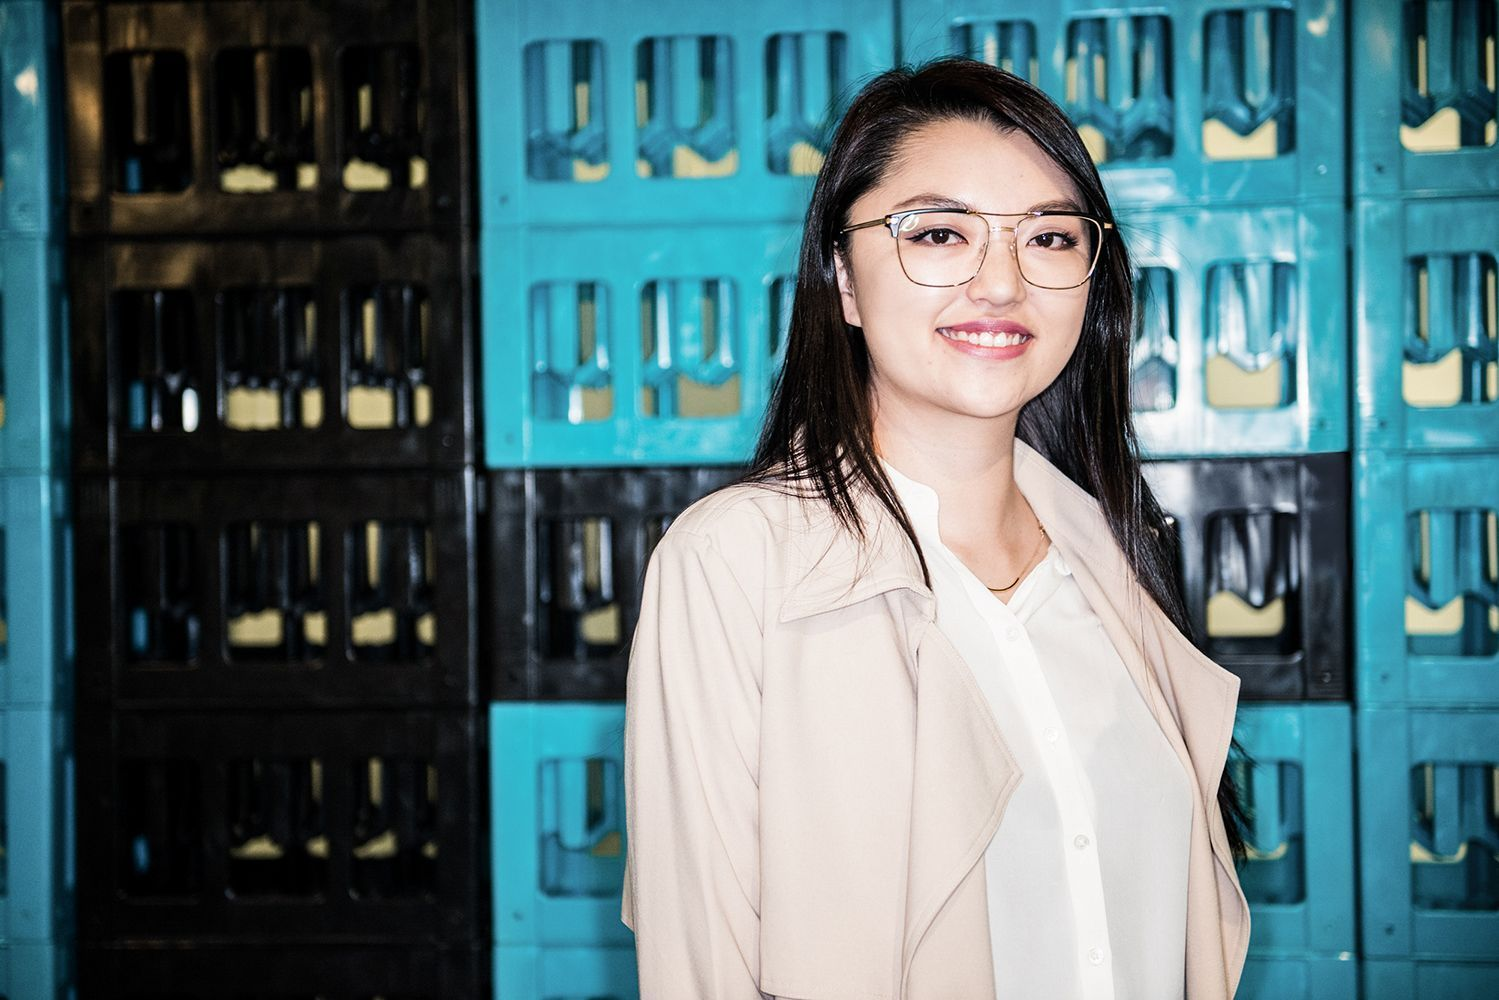 What Matters To Me: Jamie Chiu, Co-Founder Of The Brightly Project